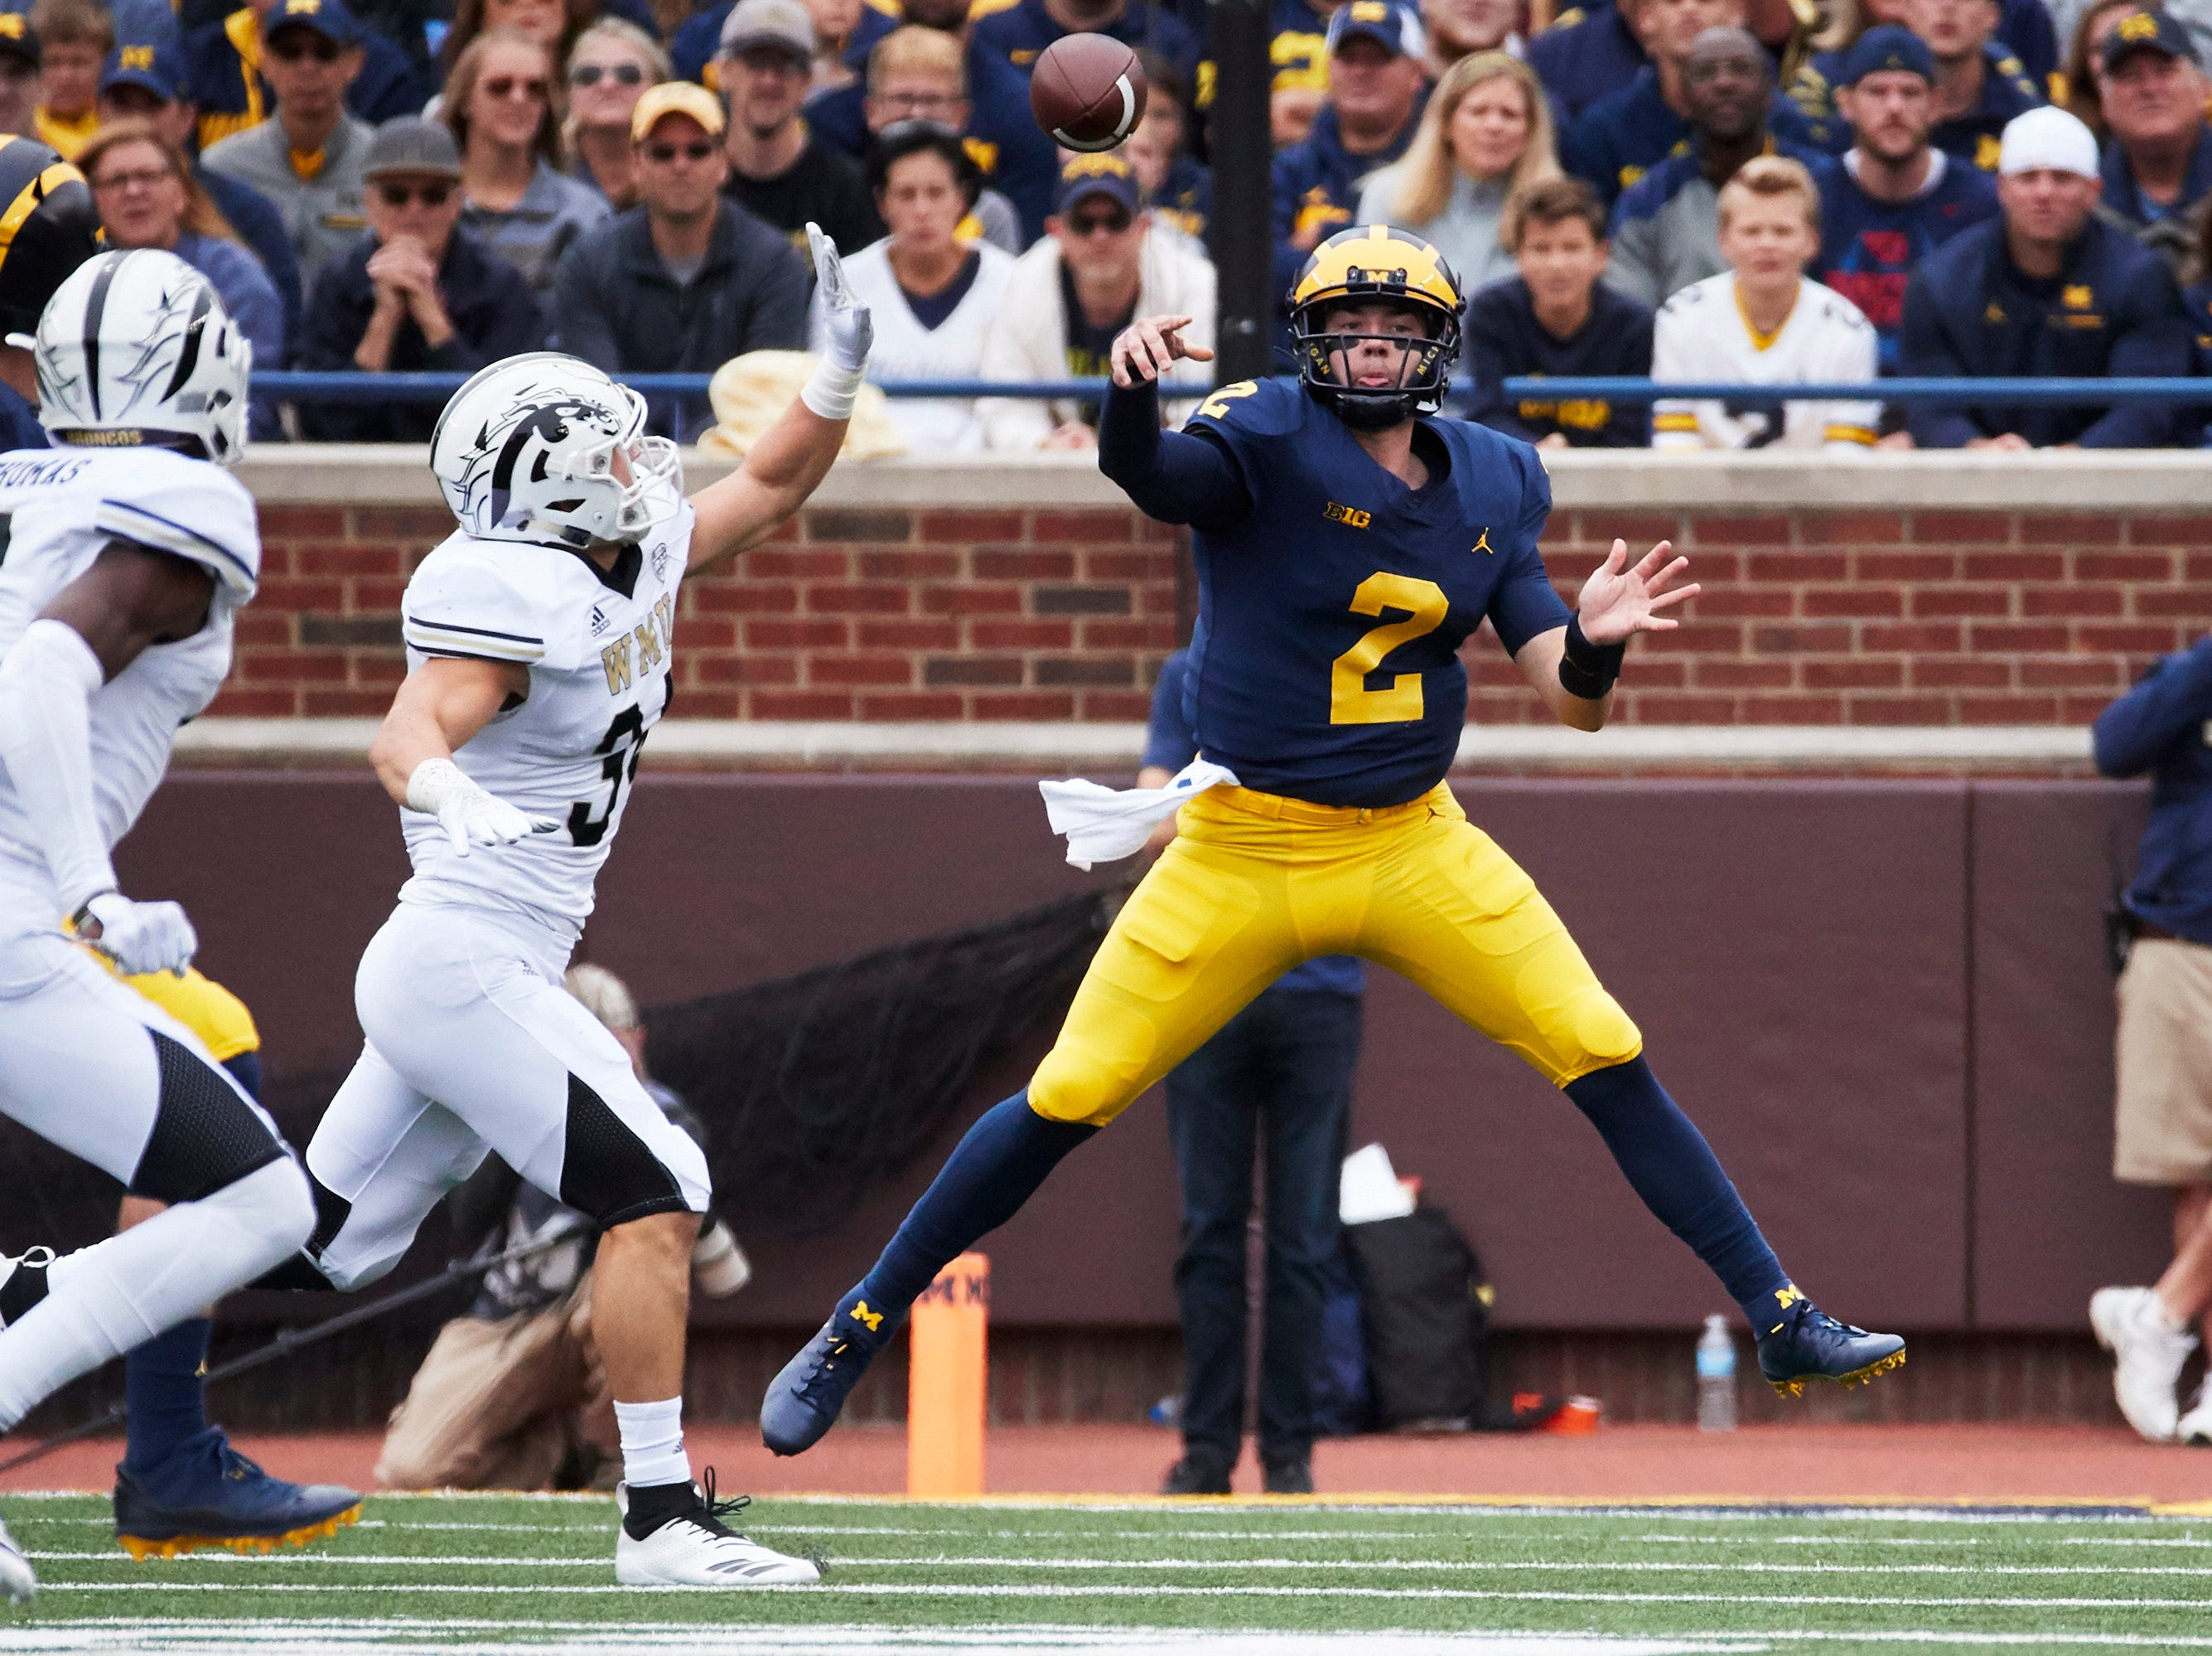 Sep 8, 2018; Ann Arbor, MI, USA; Michigan Wolverines quarterback Shea Patterson (2) throws a pass in the first half against the Western Michigan Broncos at Michigan Stadium. Mandatory Credit: Rick Osentoski-USA TODAY Sports